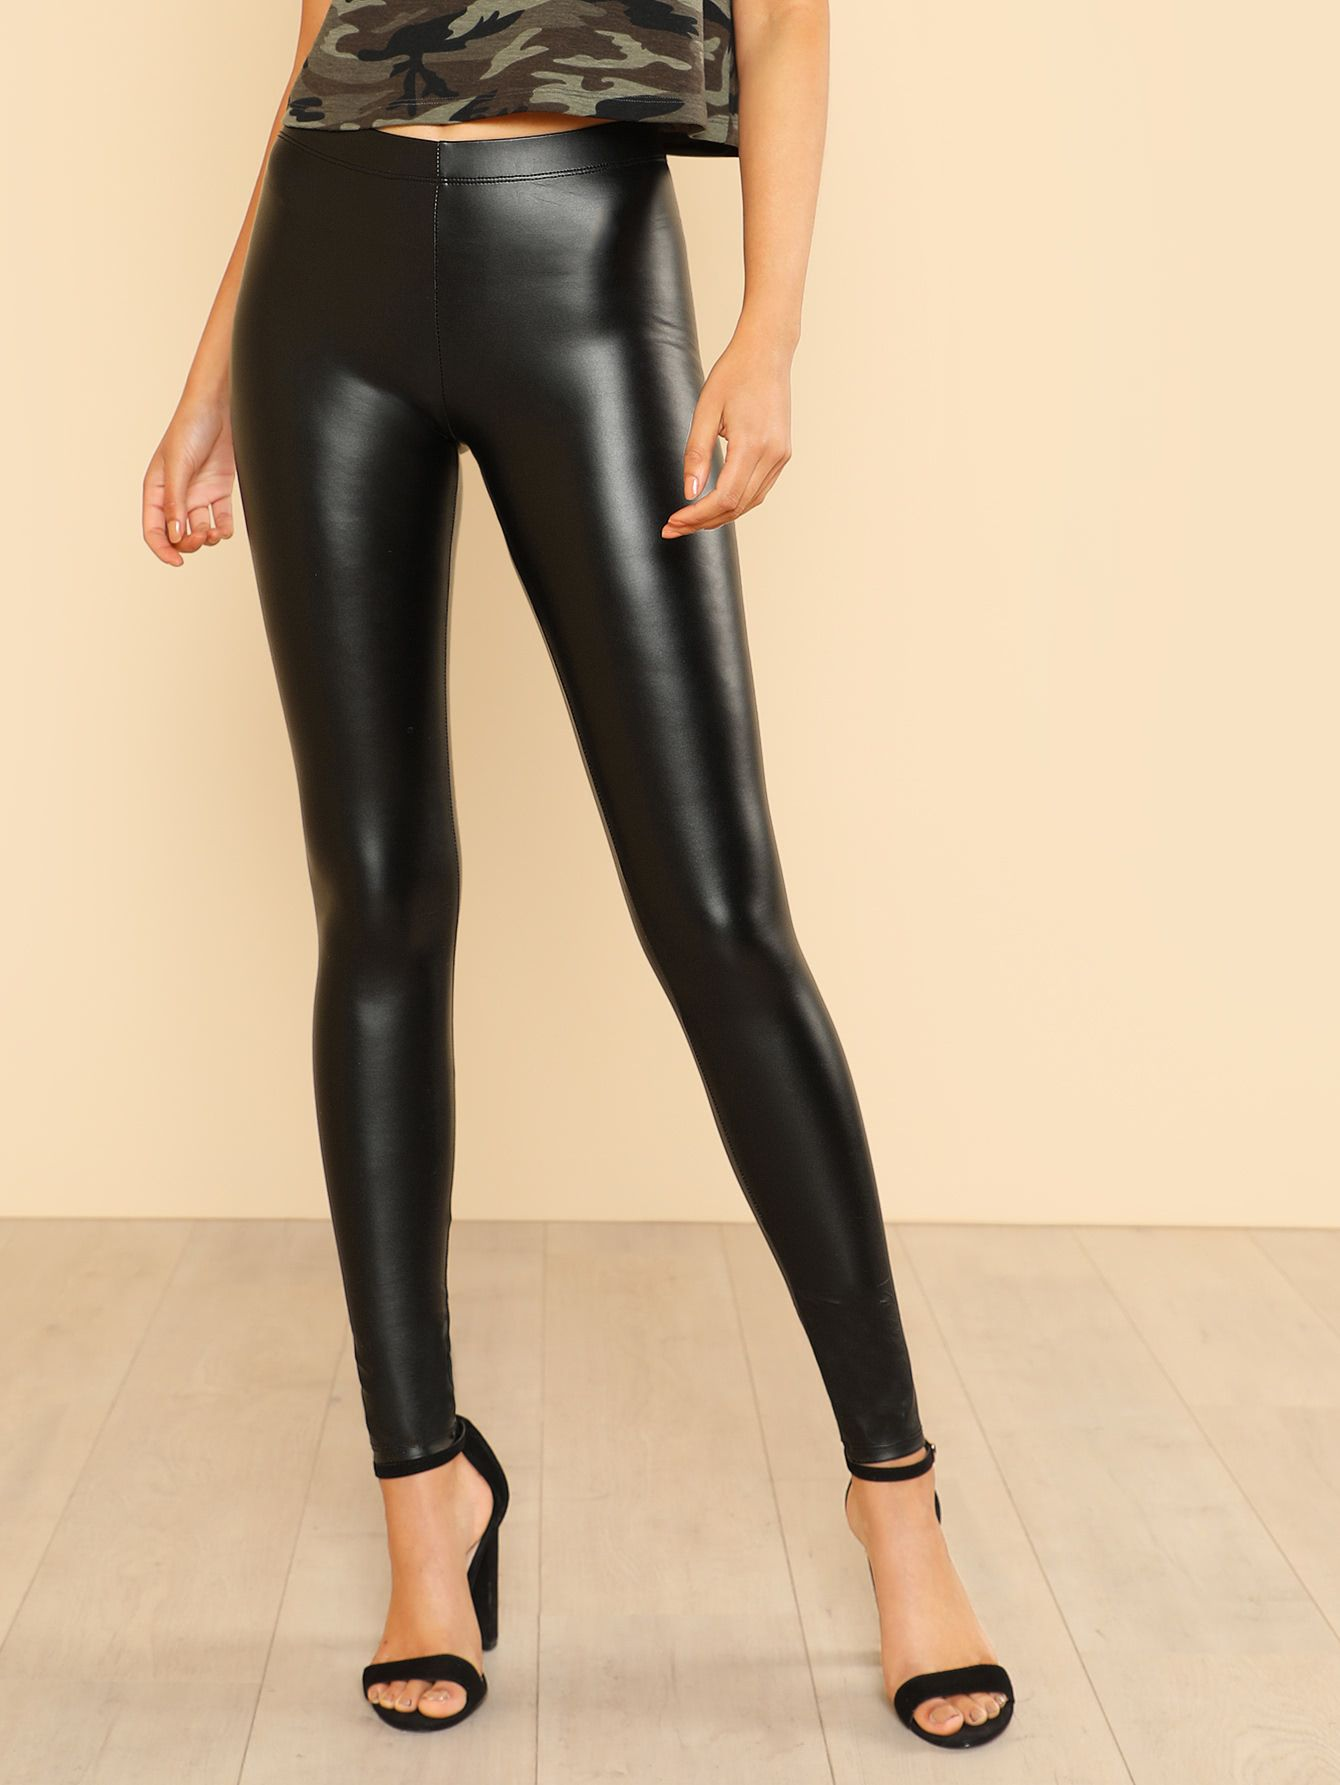 969eea13f0479 Shop Faux Leather Leggings BLACK online. SheIn offers Faux Leather Leggings  BLACK & more to fit your fashionable needs.